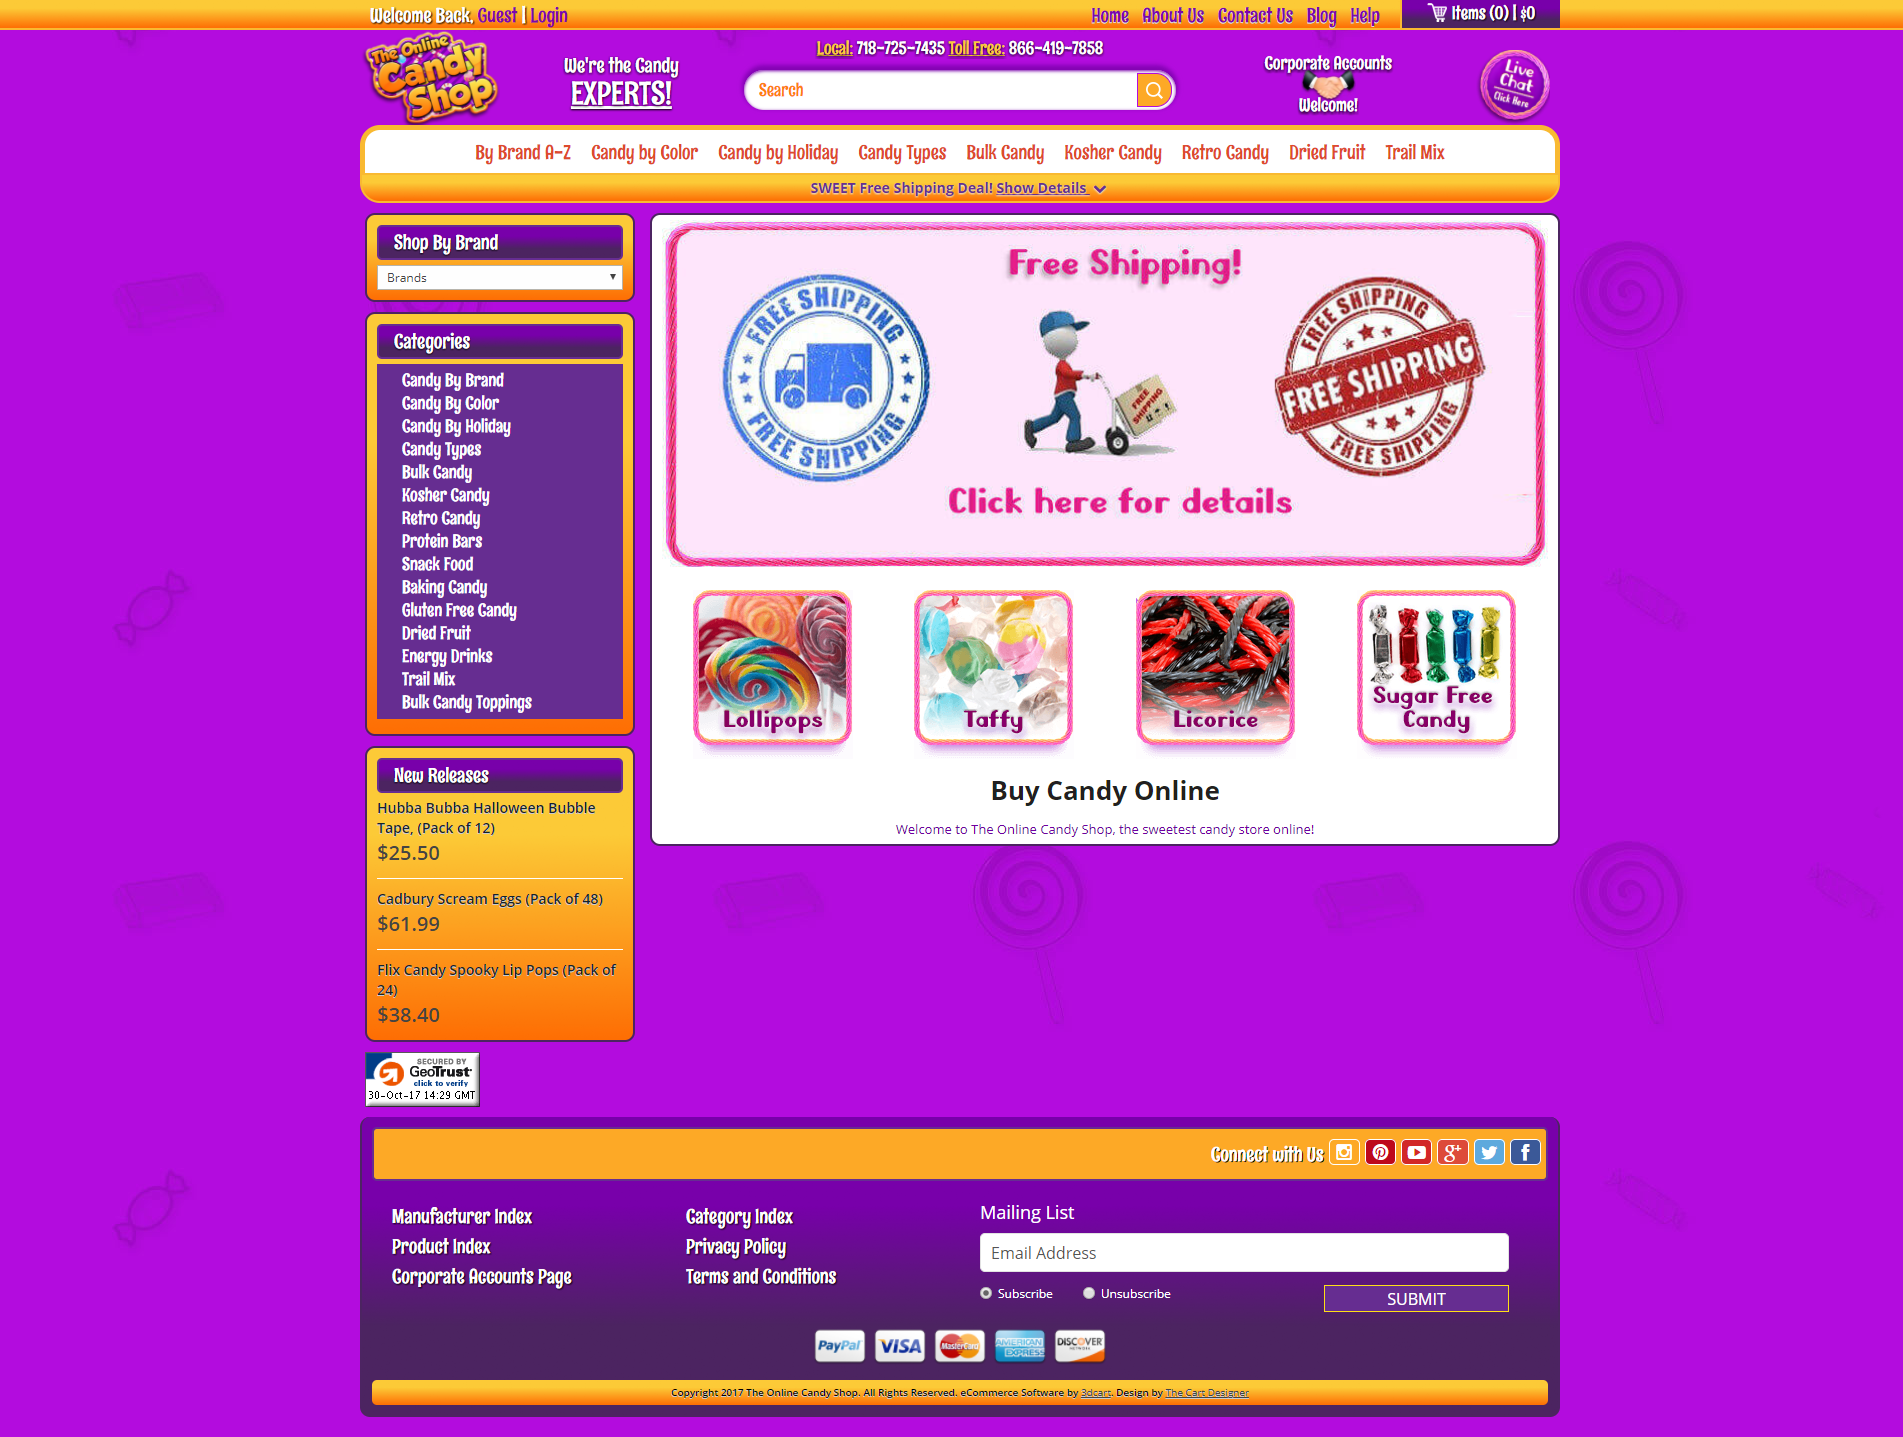 Shop for candy online